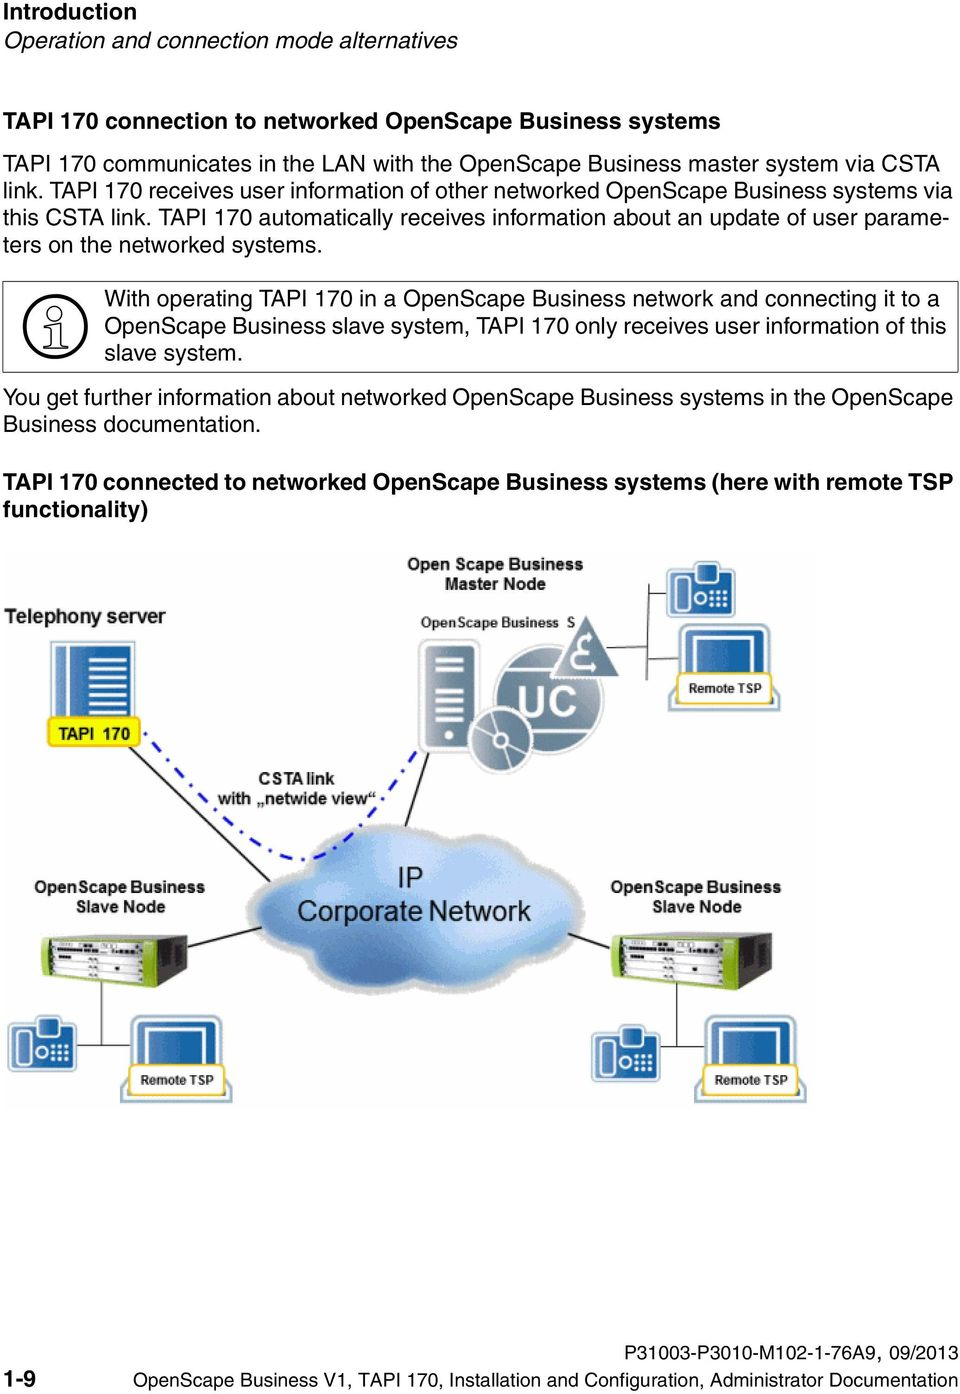 OpenScape Business master system via CSTA link. TAPI 170 receives user information of other networked OpenScape Business systems via this CSTA link.